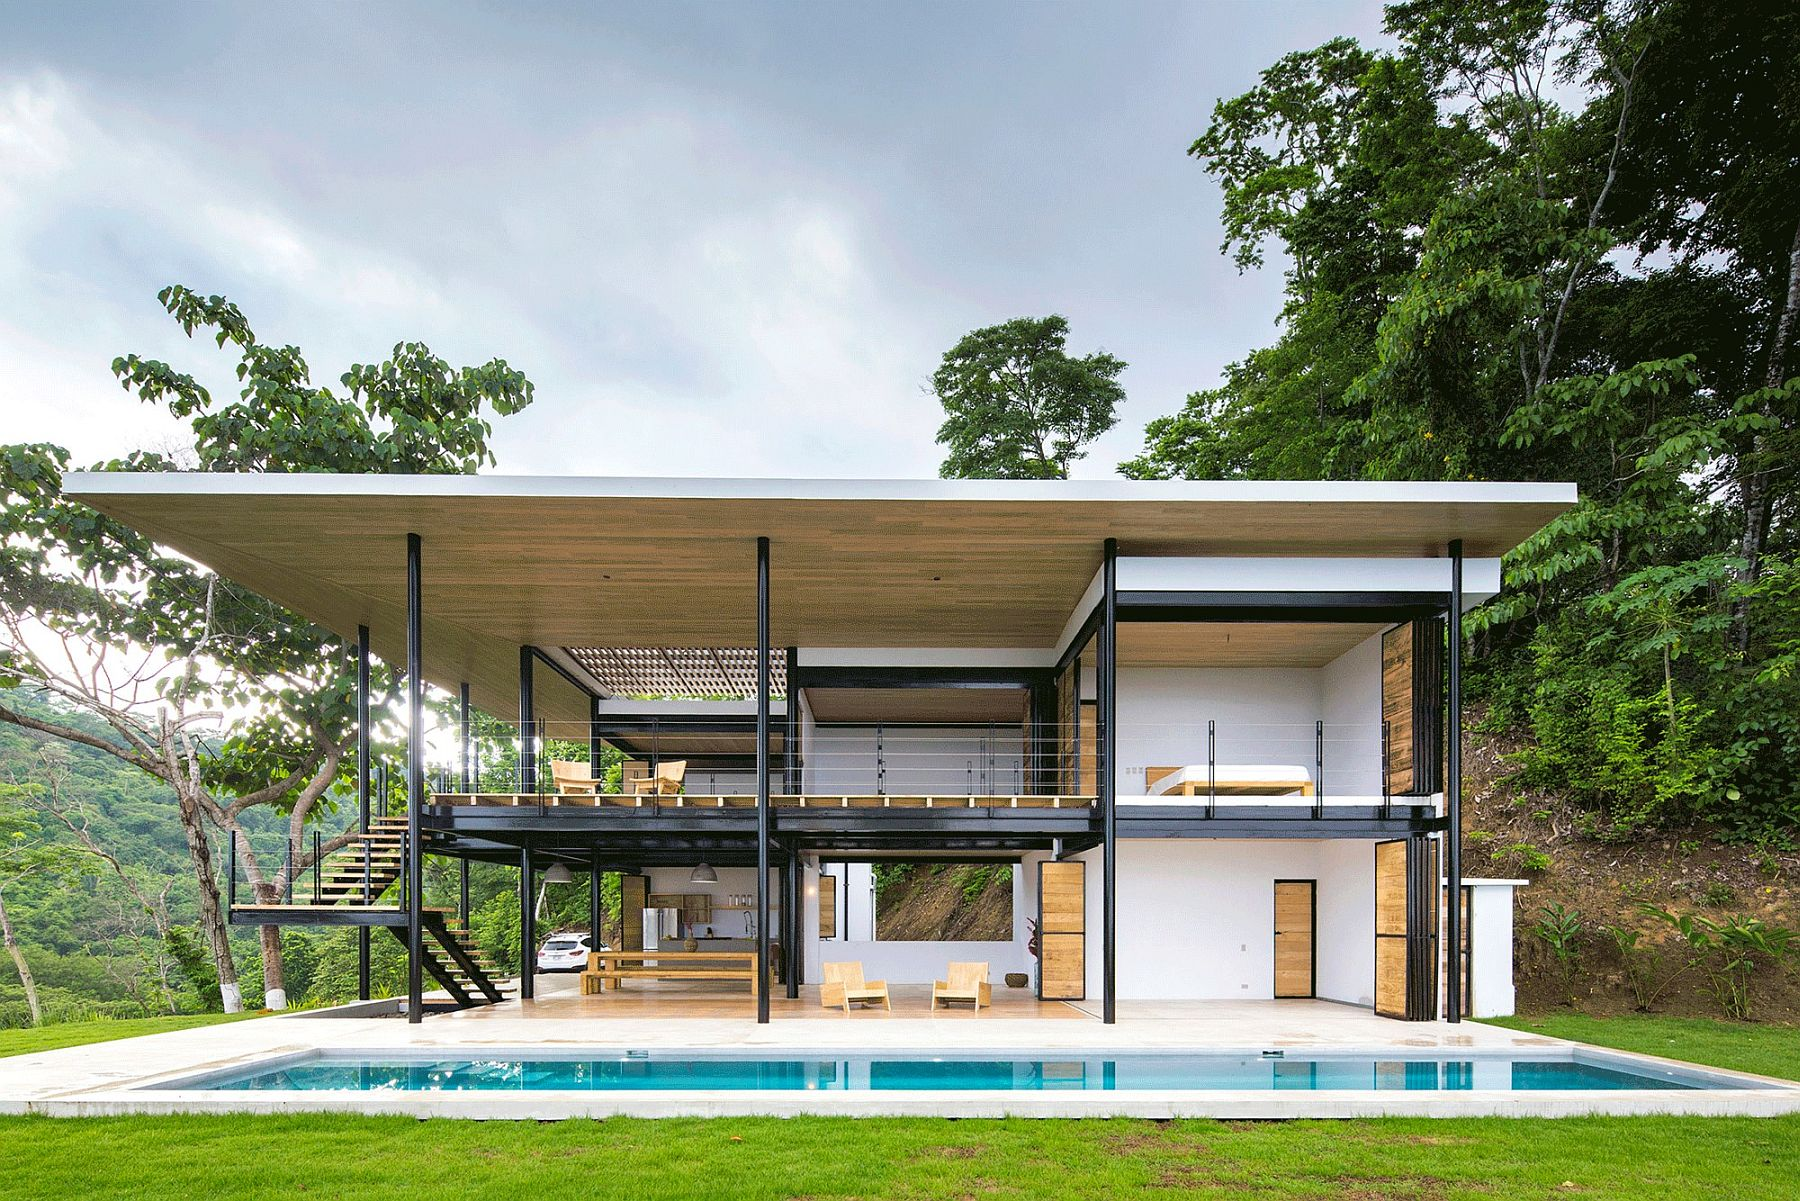 Steel and wood create a series of platforms and terraces that create a smart indoor-outdoor interplay